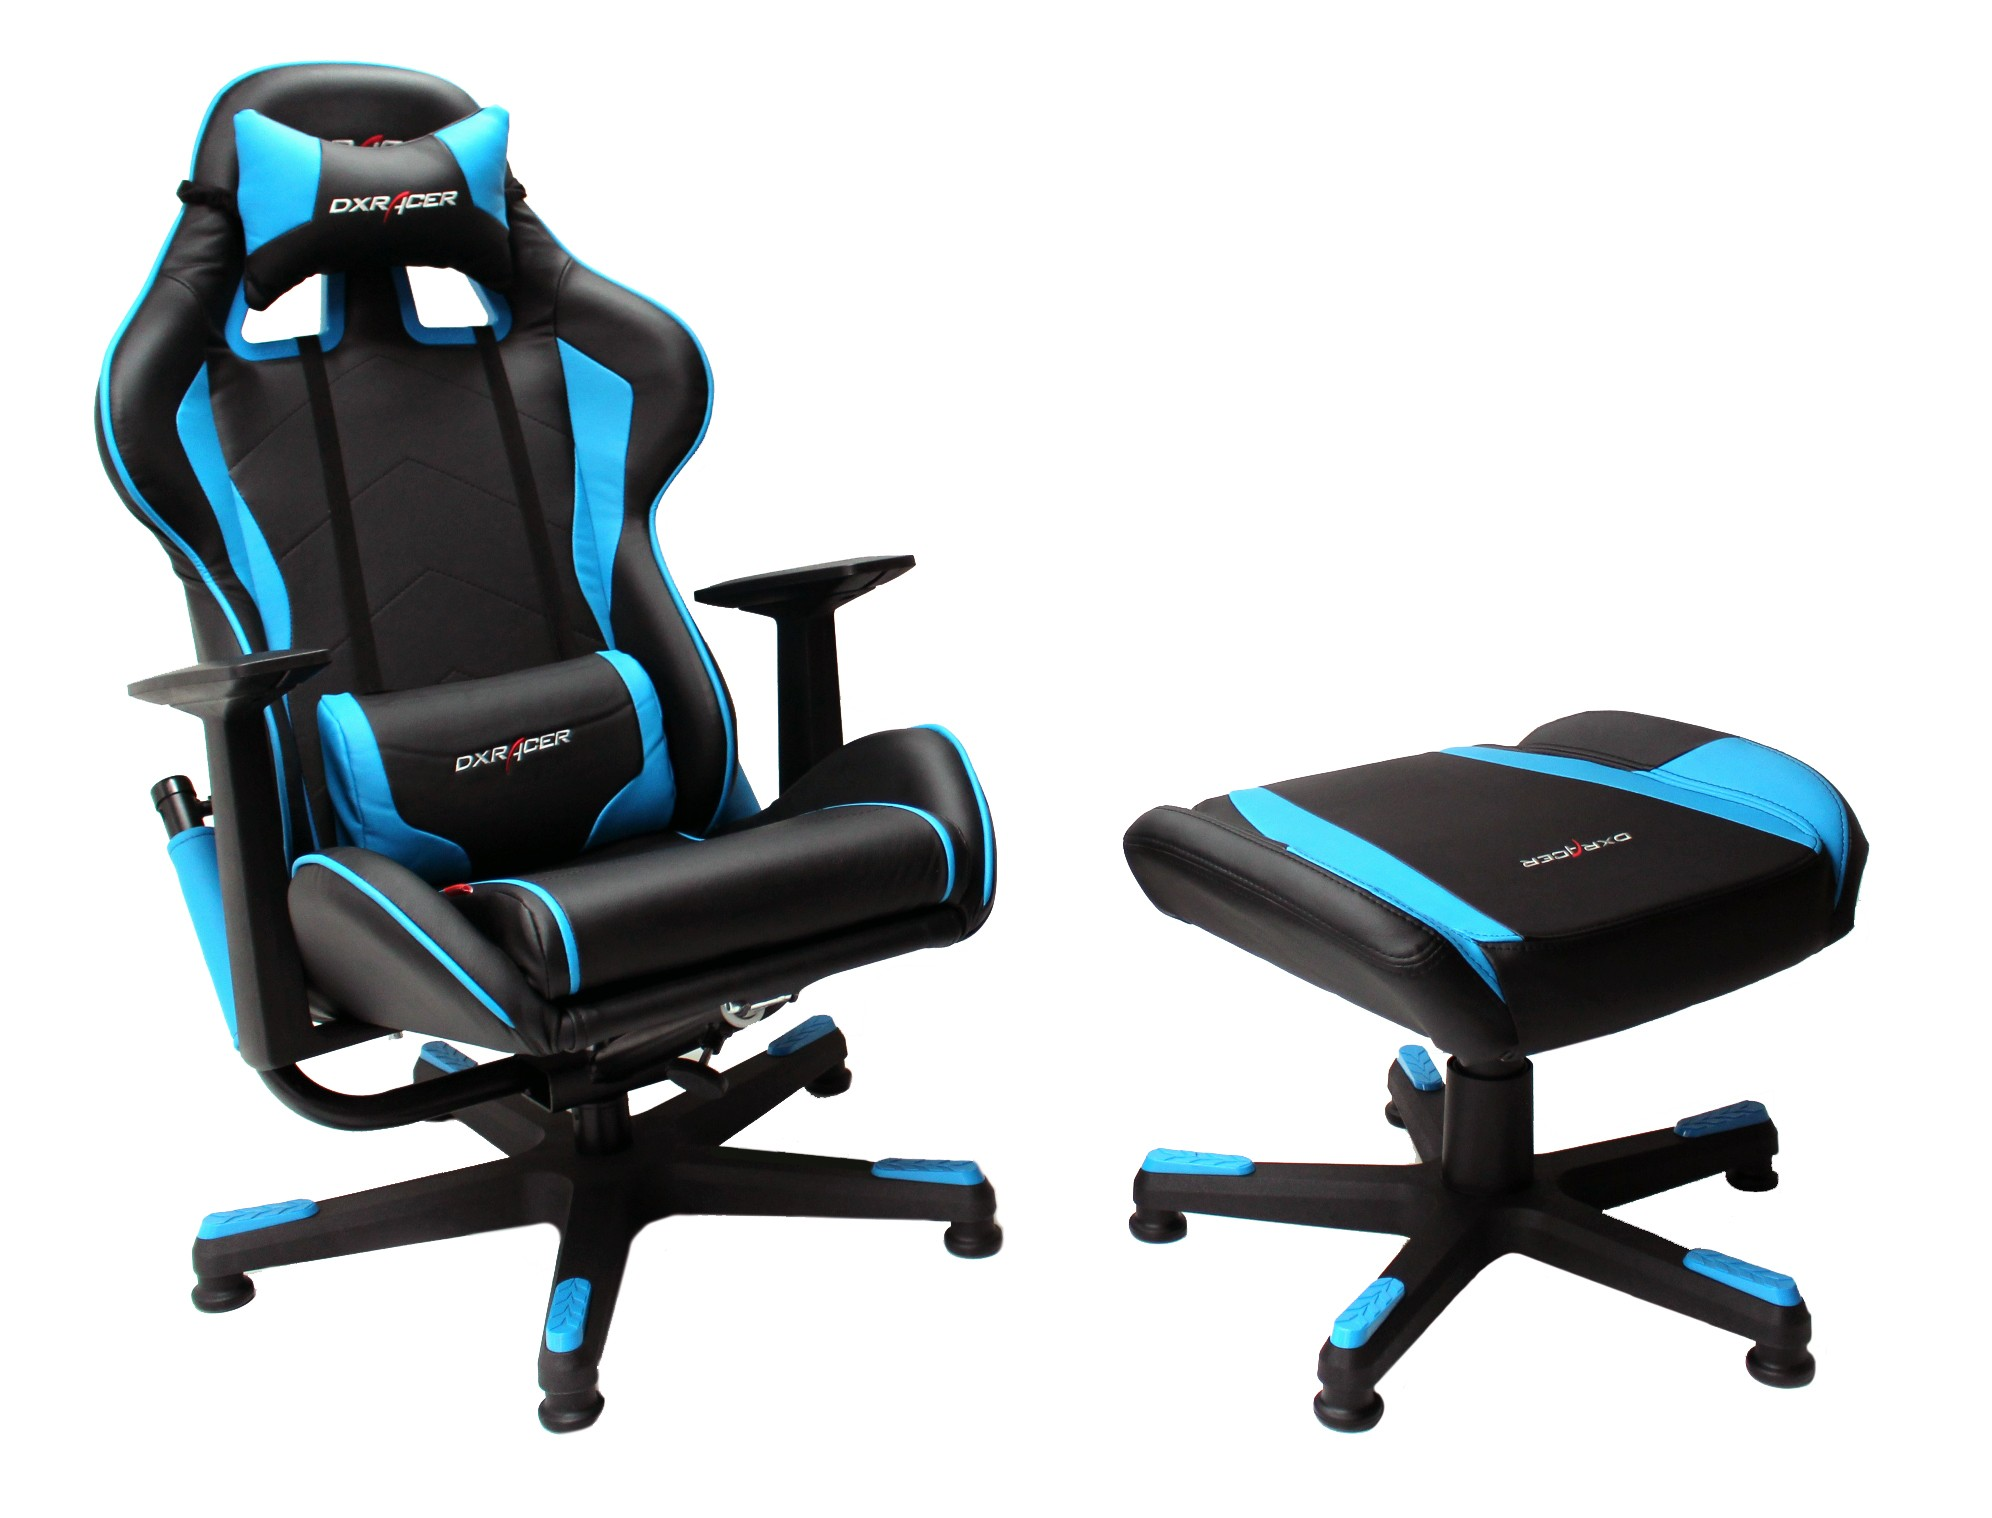 Sedia Gaming Kinsal Chaise De Gaming Latest Fauteuil Fauteuil Gamer Pas Cher Belle